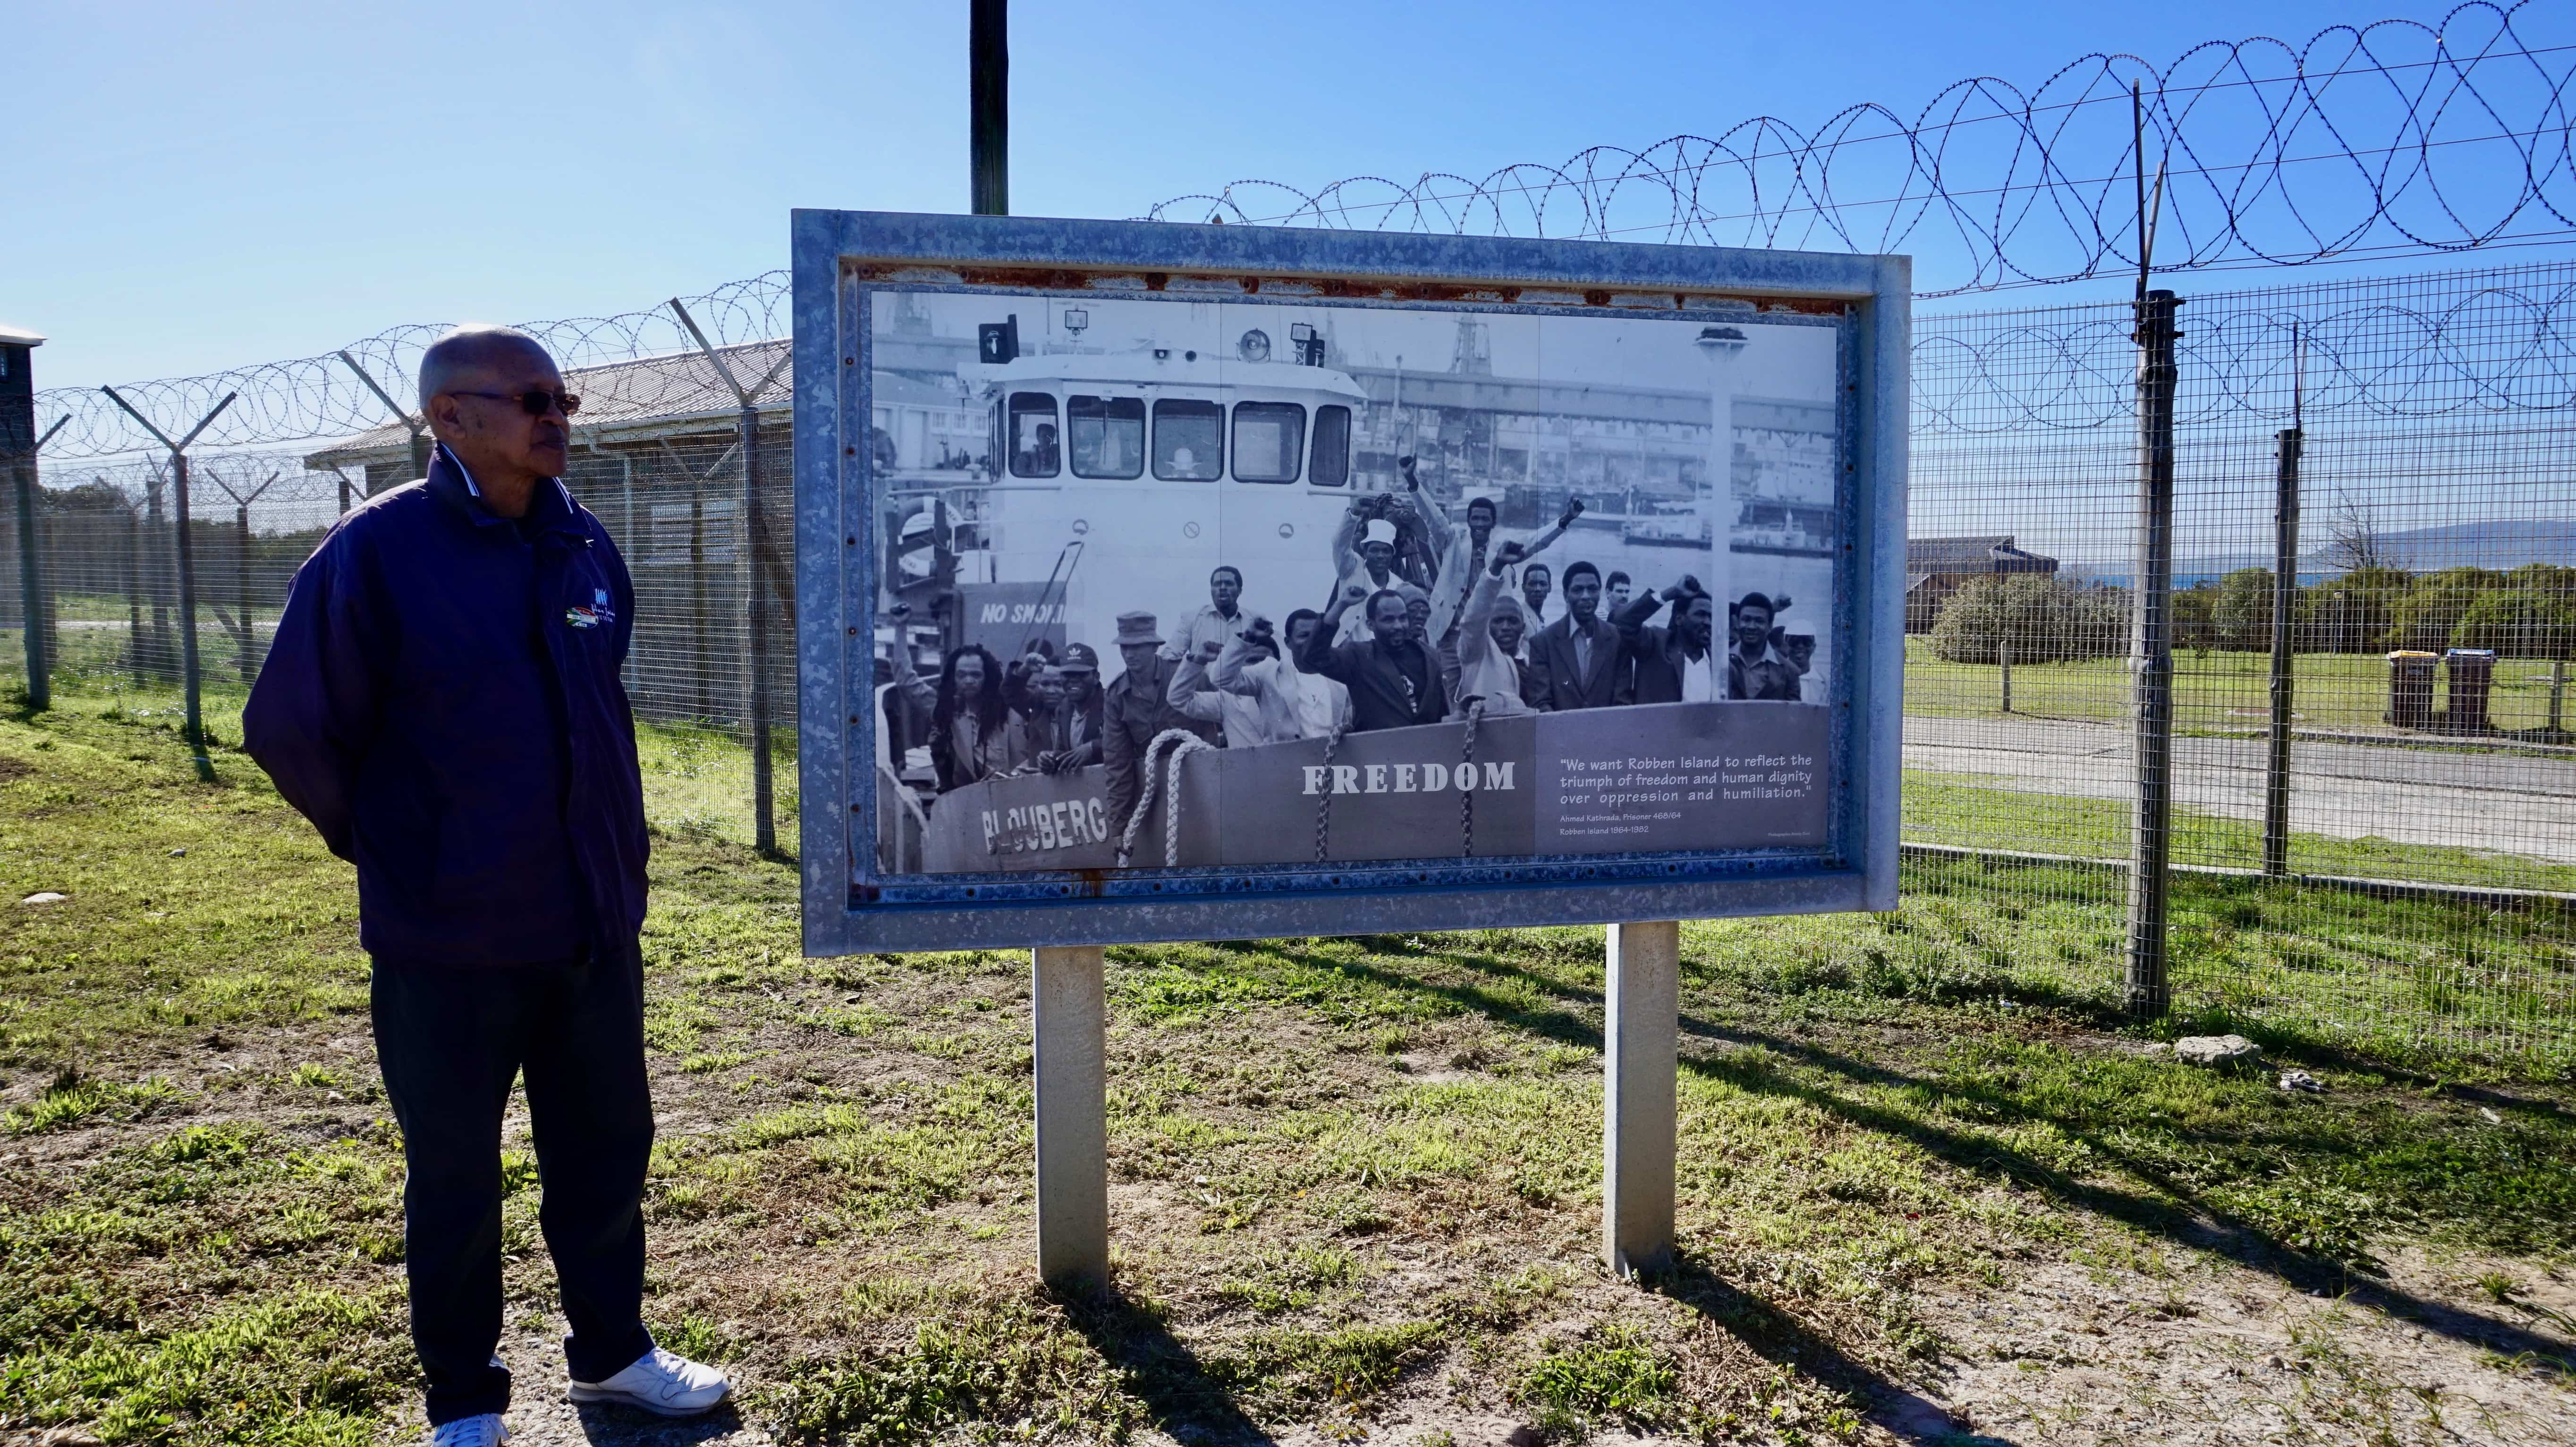 Tour guide at the Robben Island prison, Cape Town